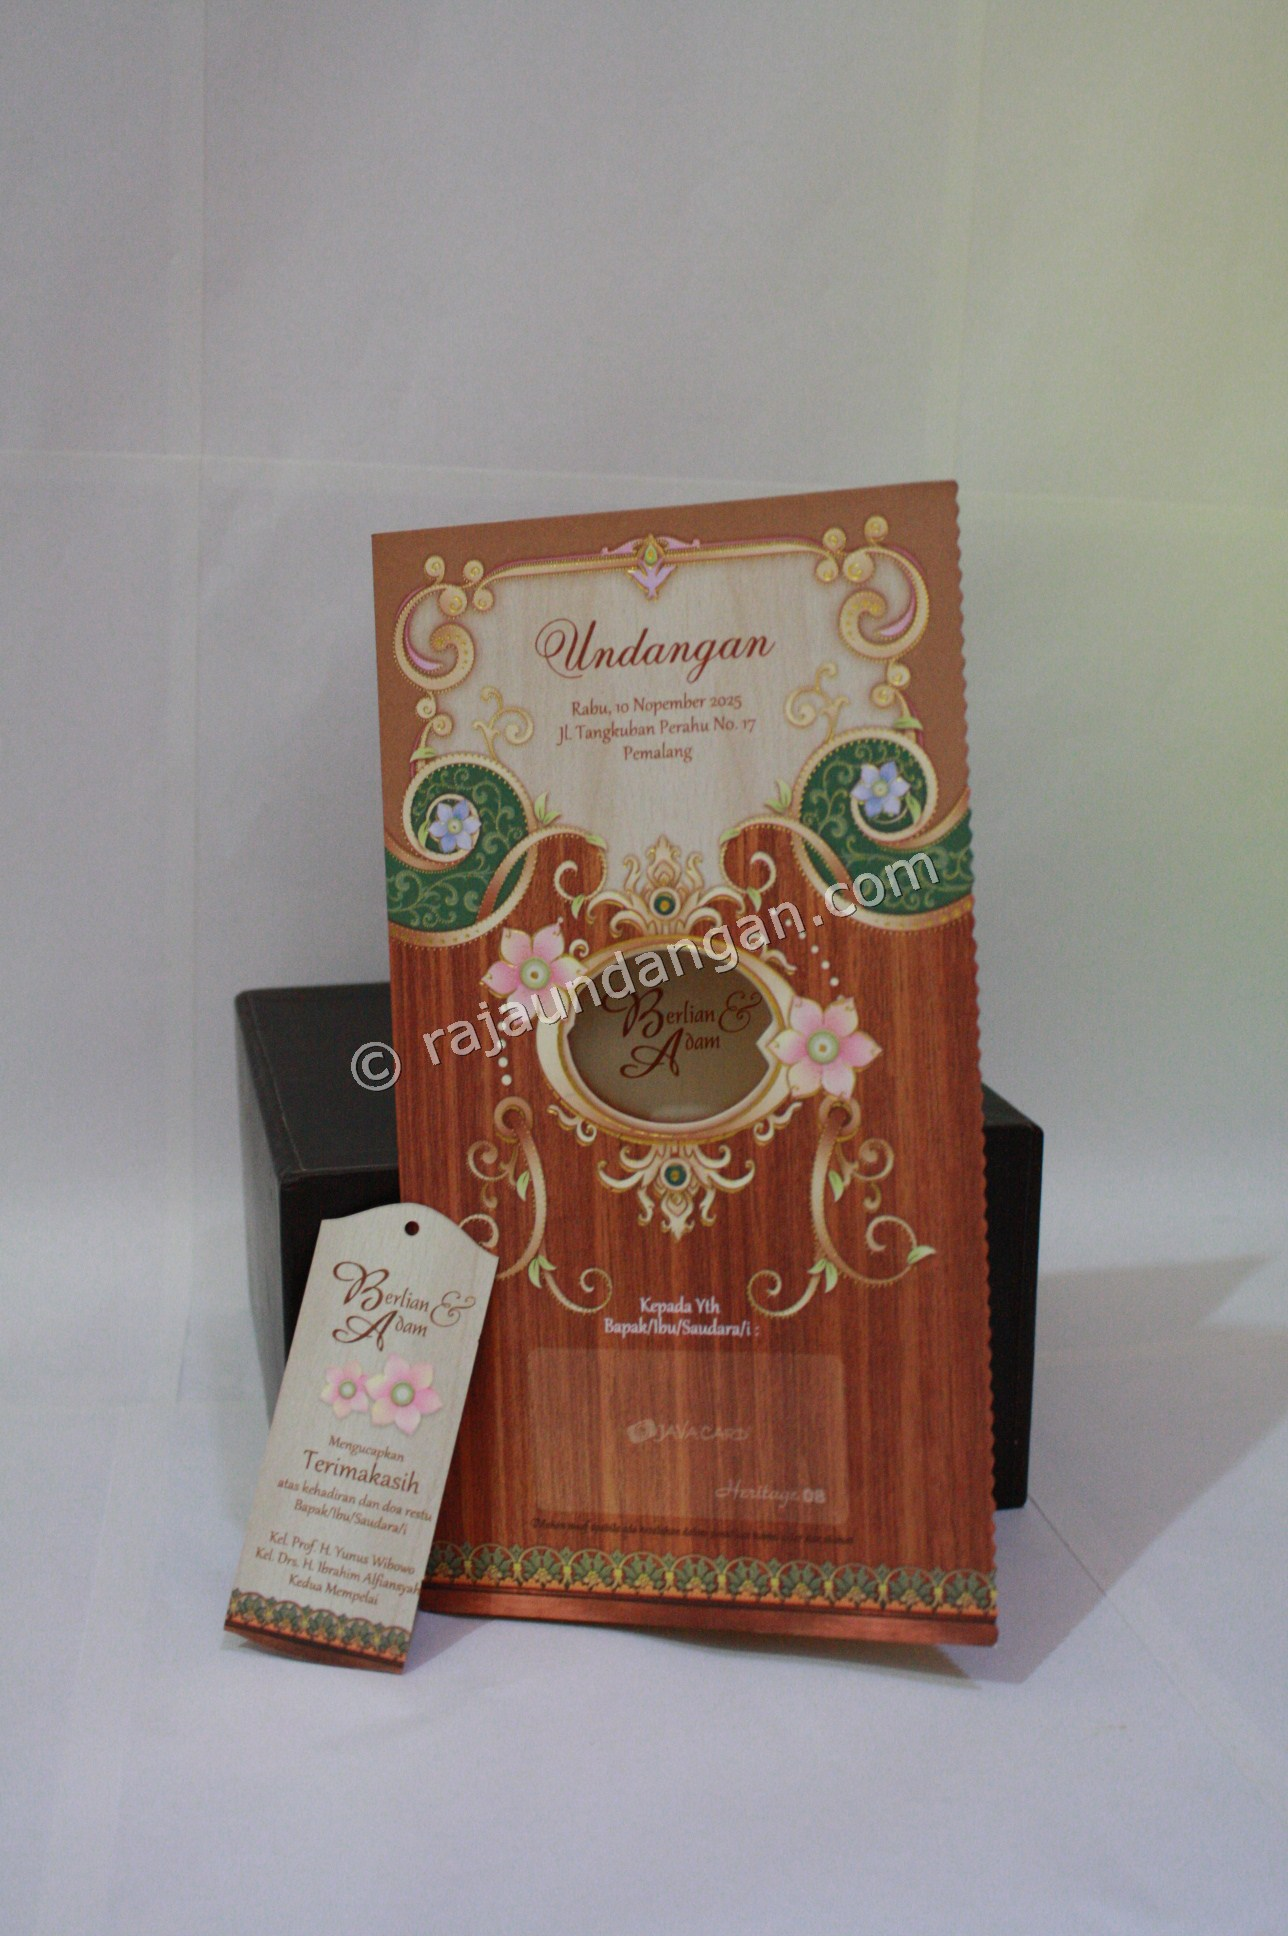 Undangan Pernikahan Softcover Berlian dan Adam 4 - Percetakan Wedding Invitations Eksklusif di Dukuh Setro